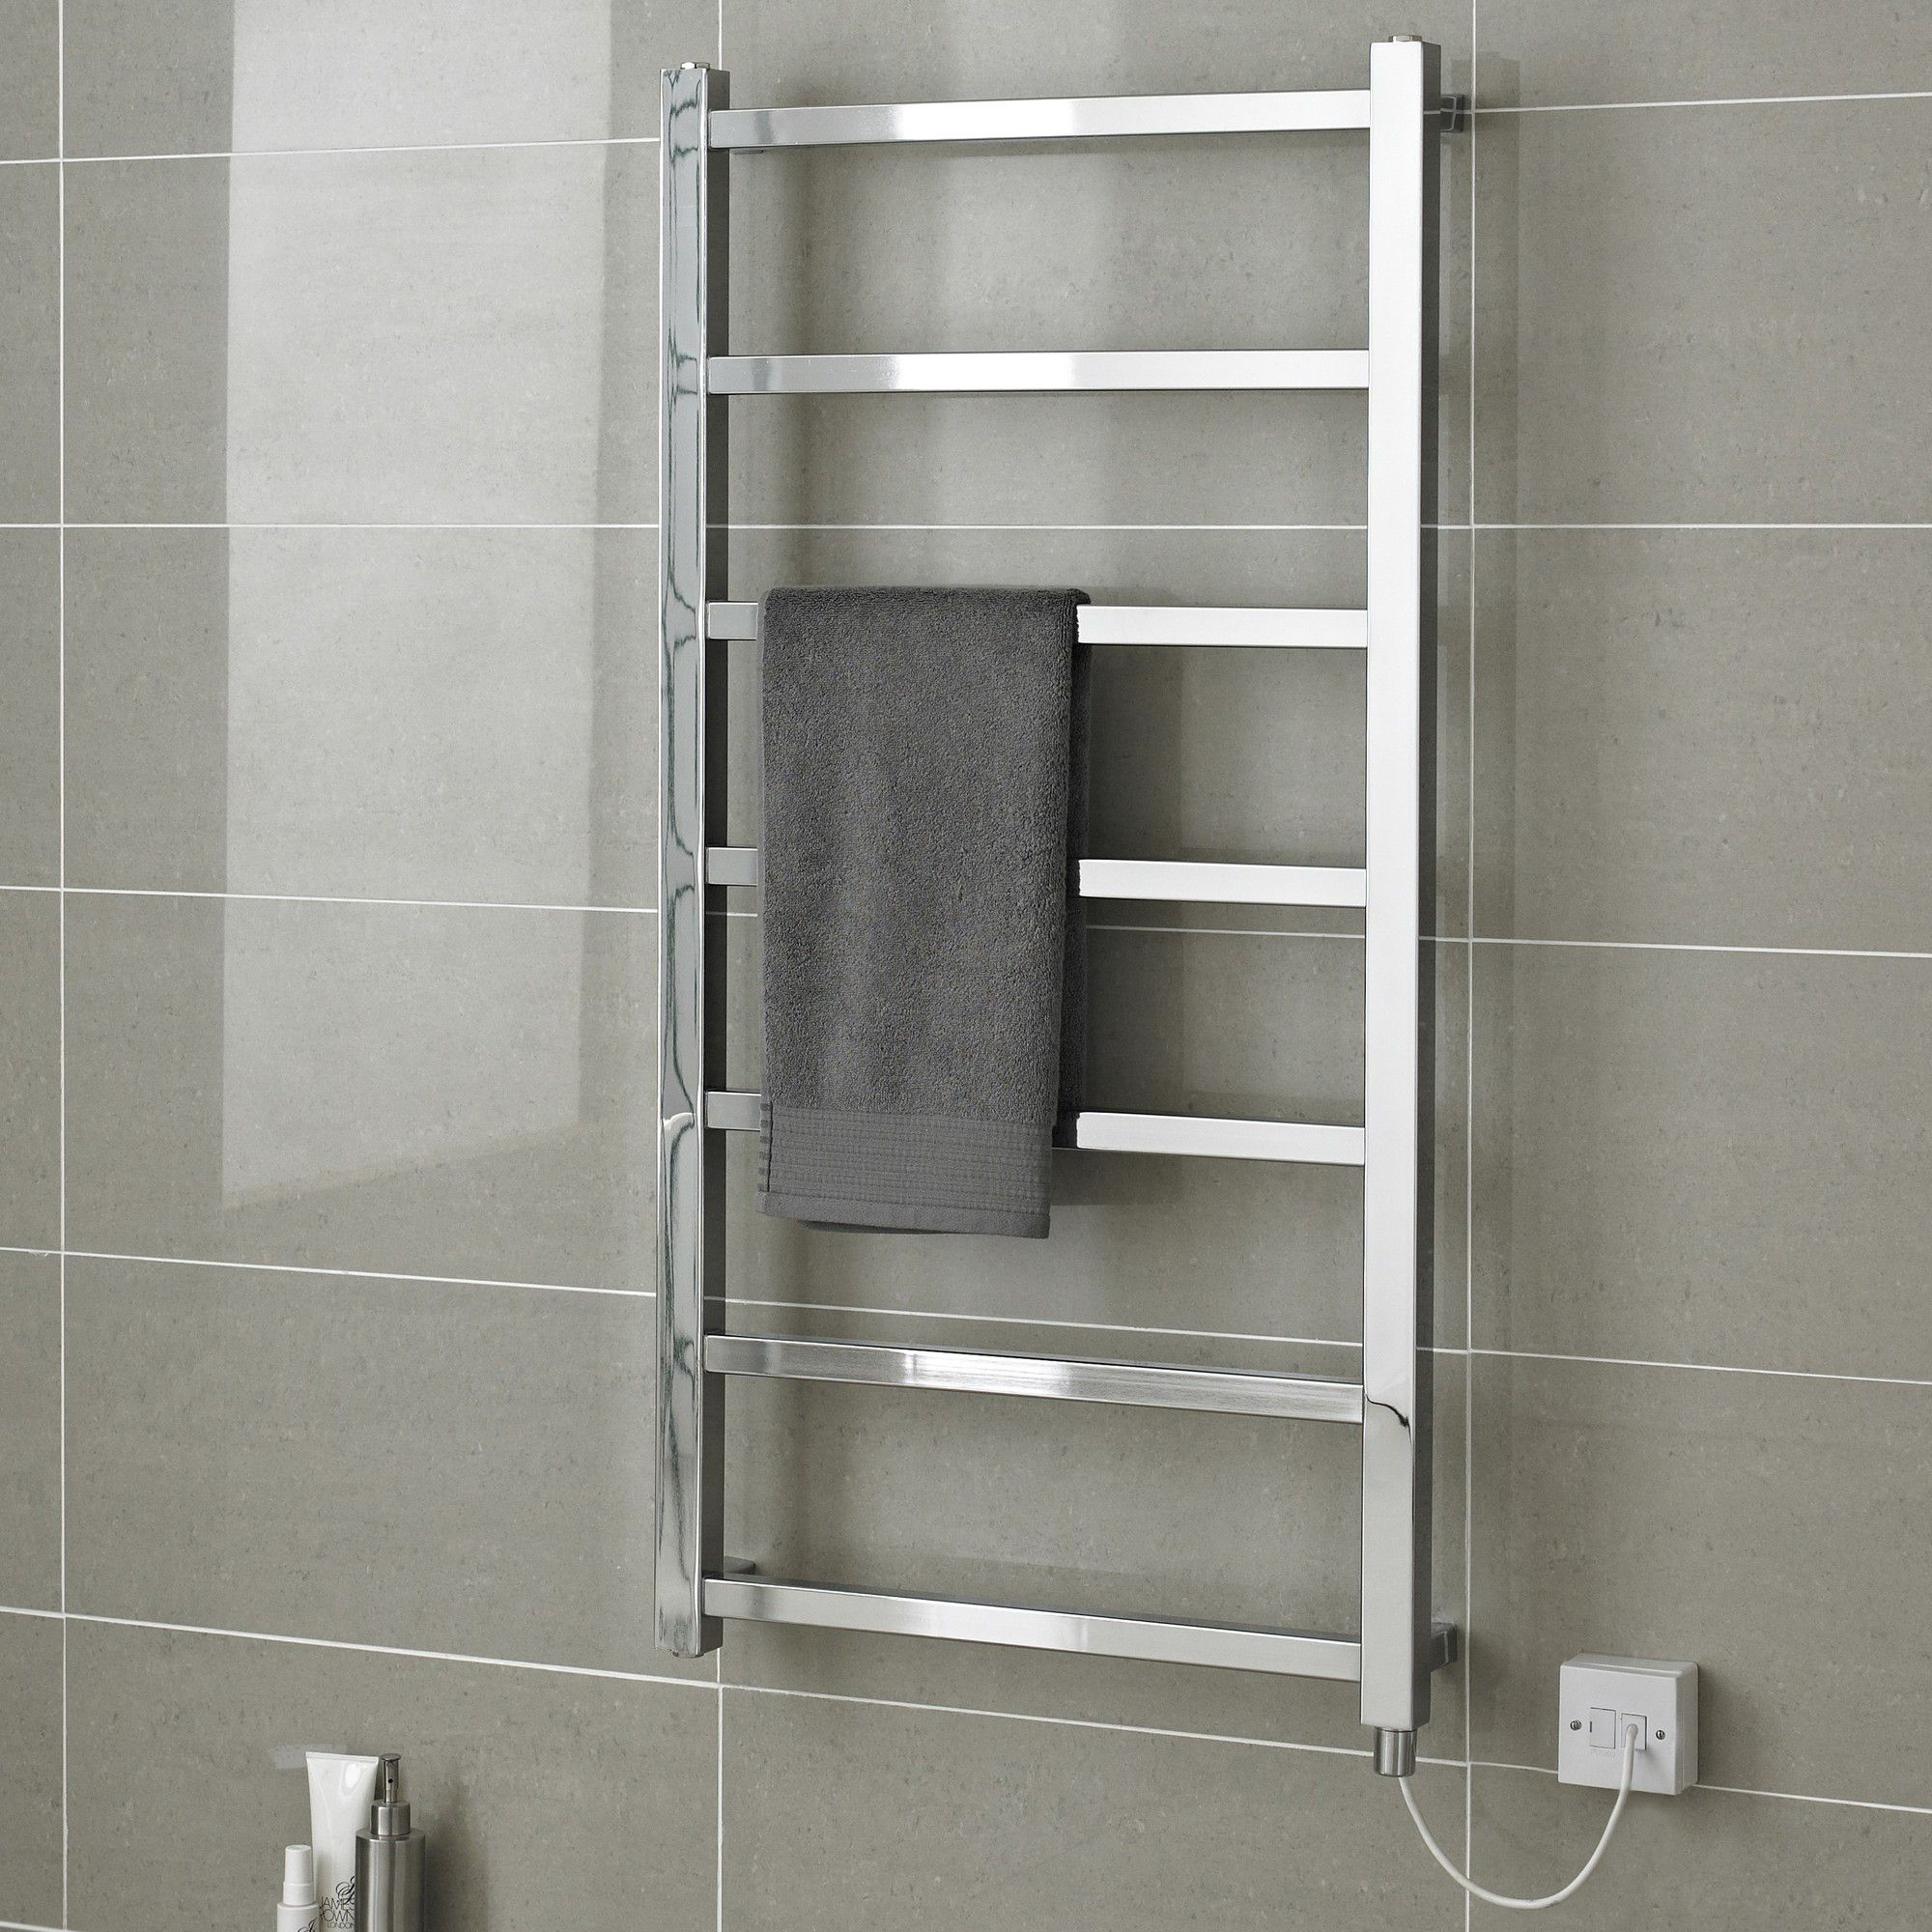 Hudson Reed Eton Electric Only Designer Radiator in Chrome - 120 cm x 60 cm at Tesco Direct